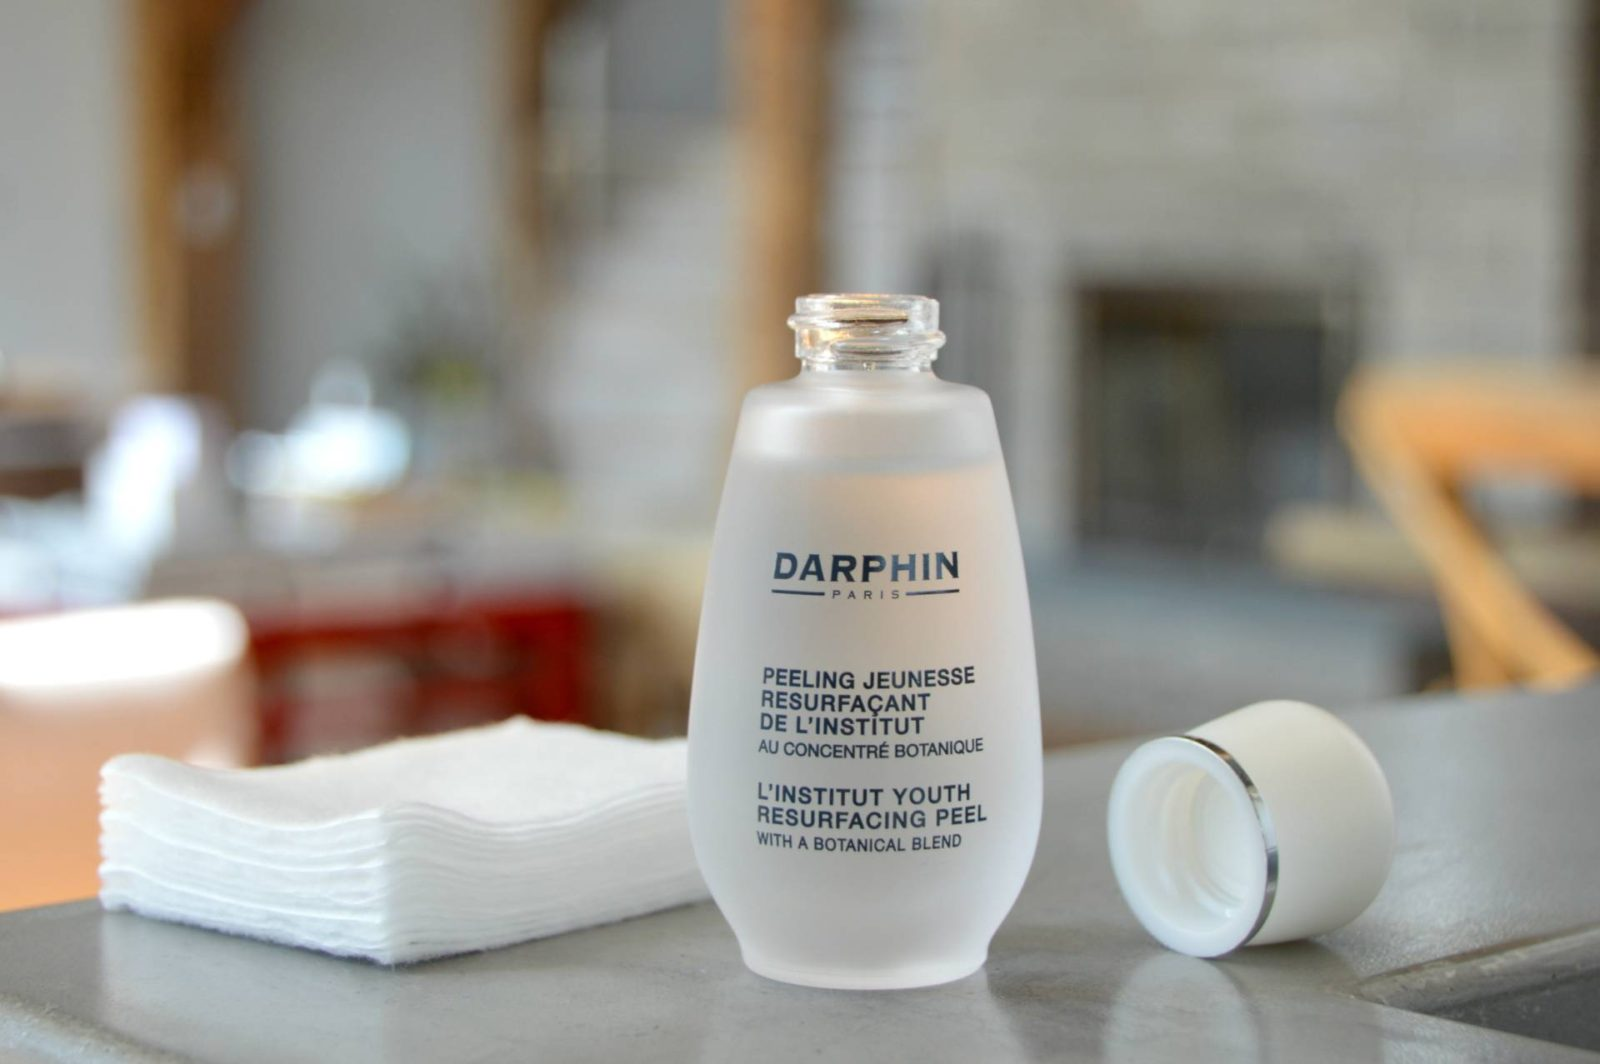 Darphin L'Institut Youth Resurfacing Peel